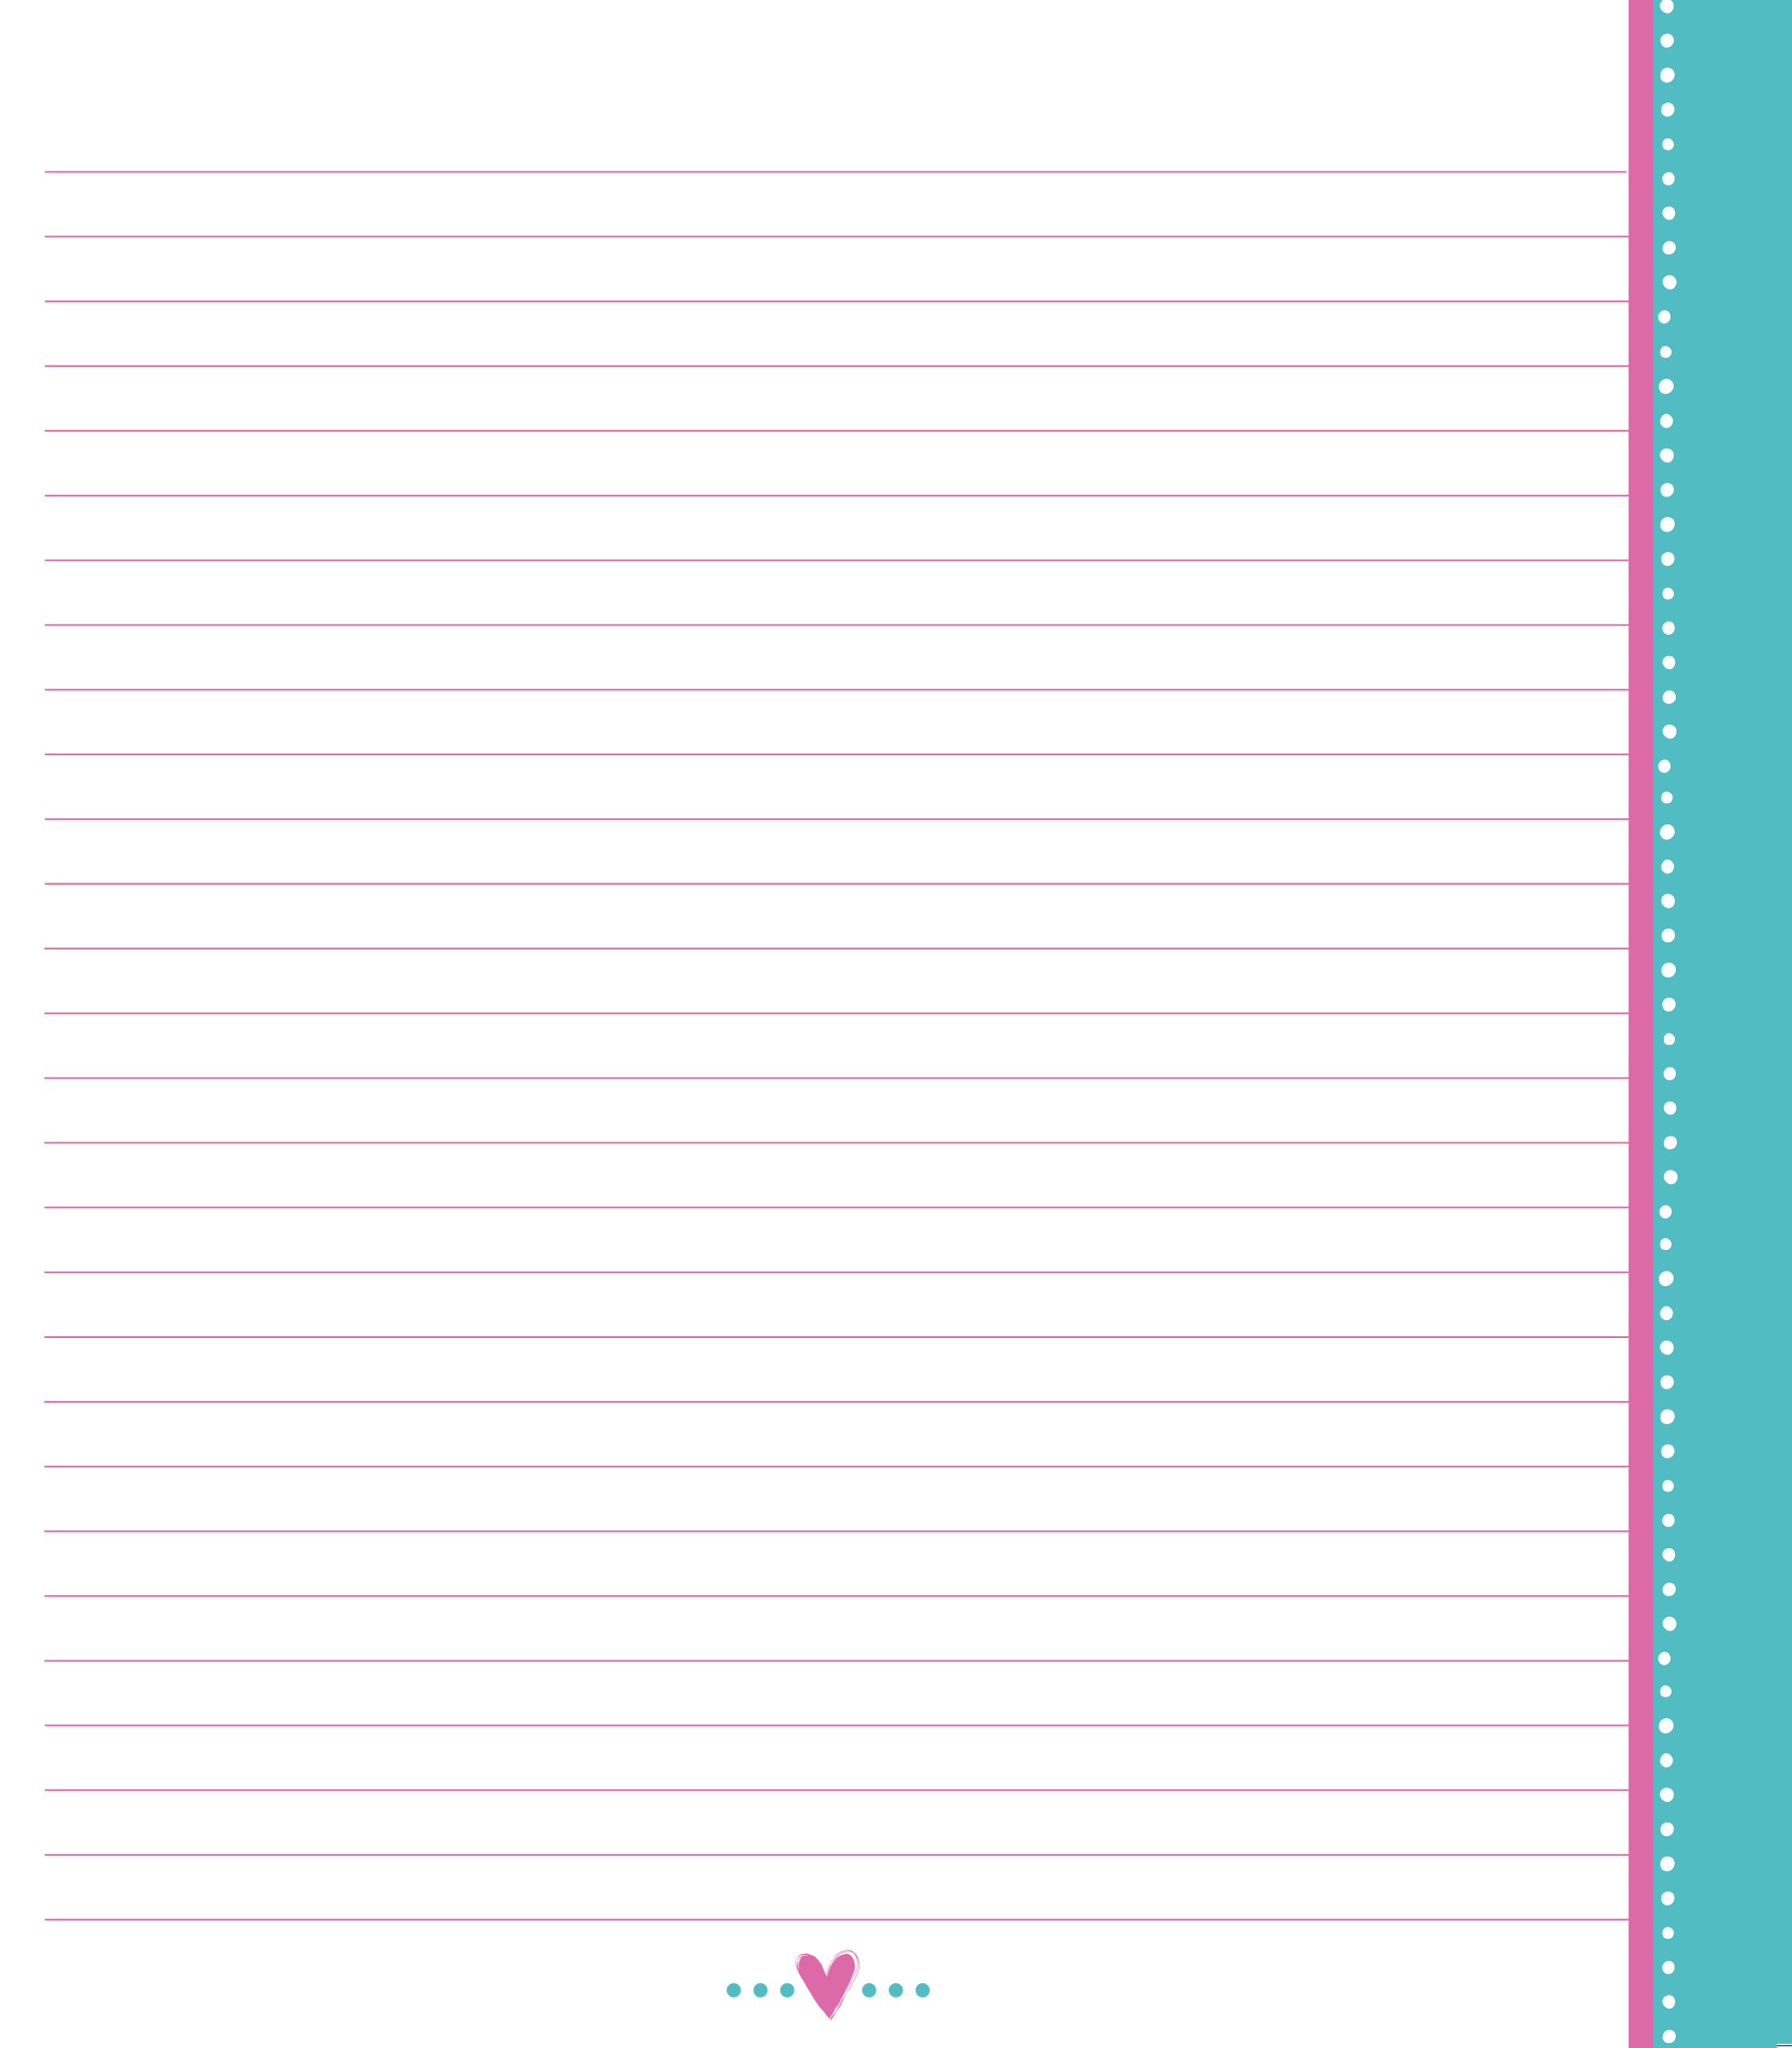 Notebook page png. Pepto pink with teal